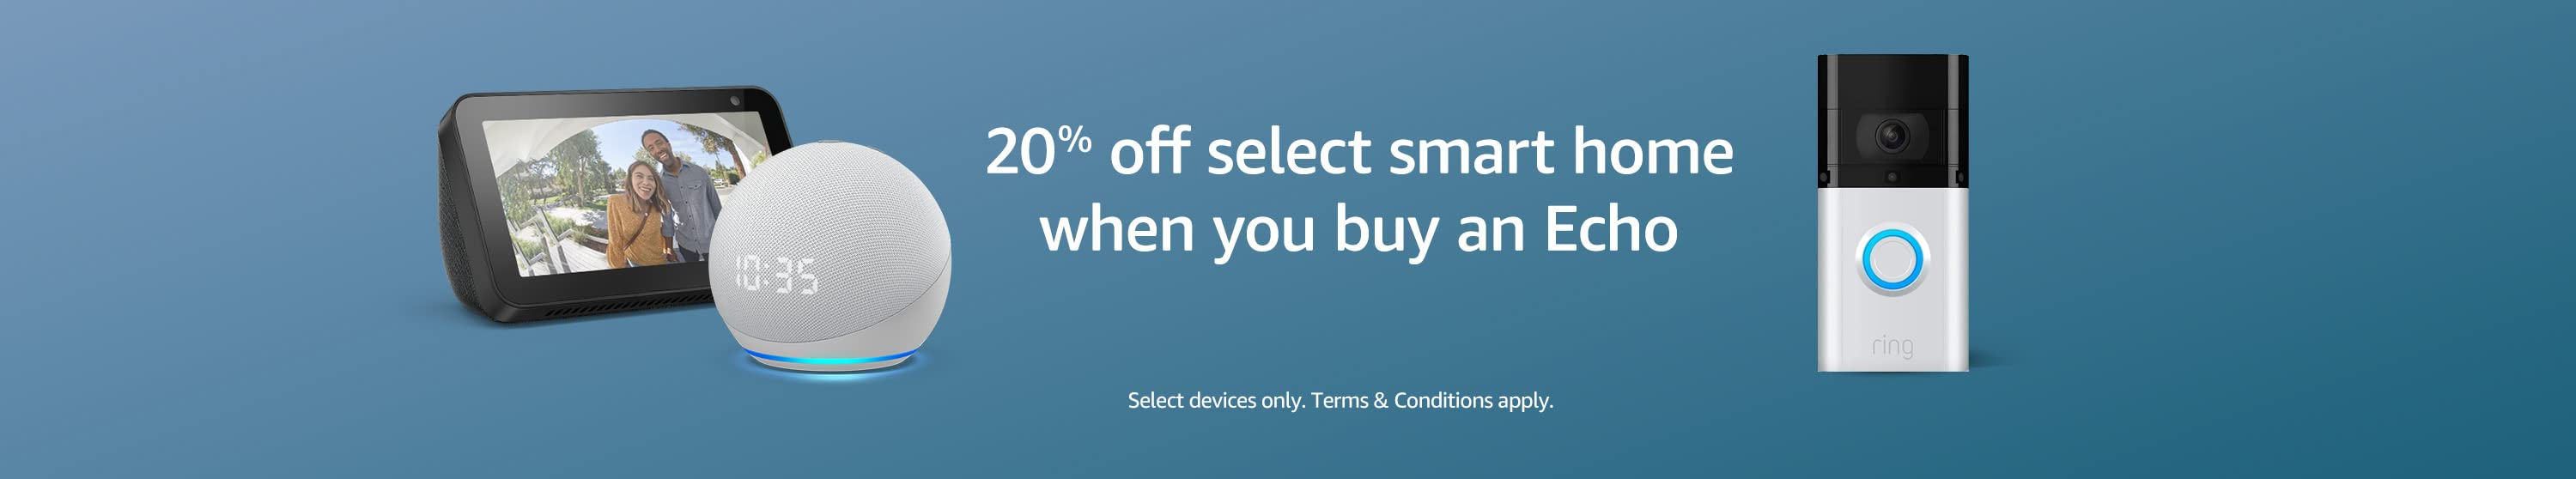 20% off smart home